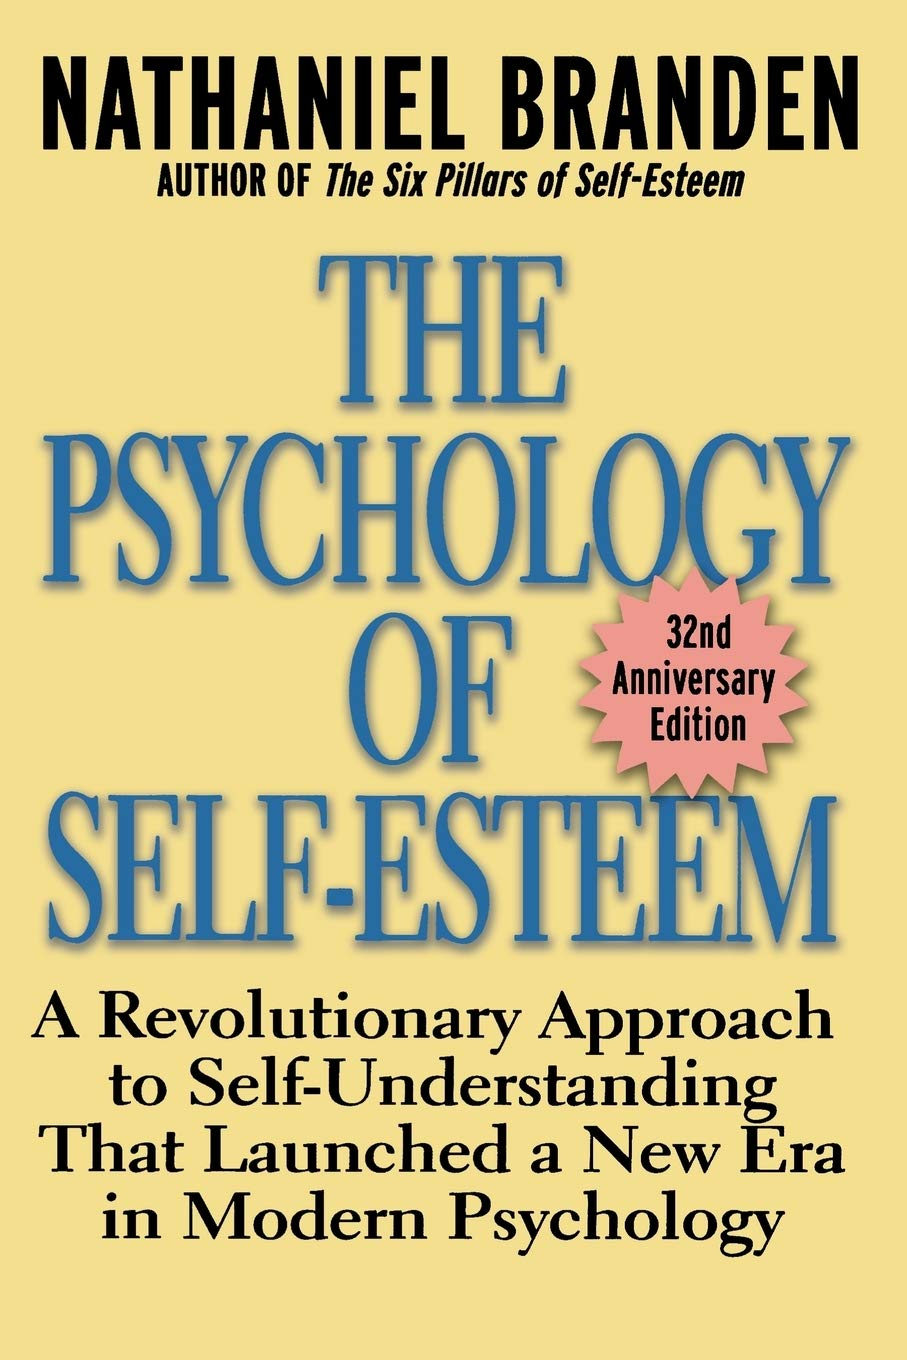 The Psychology of Self-Esteem PDF